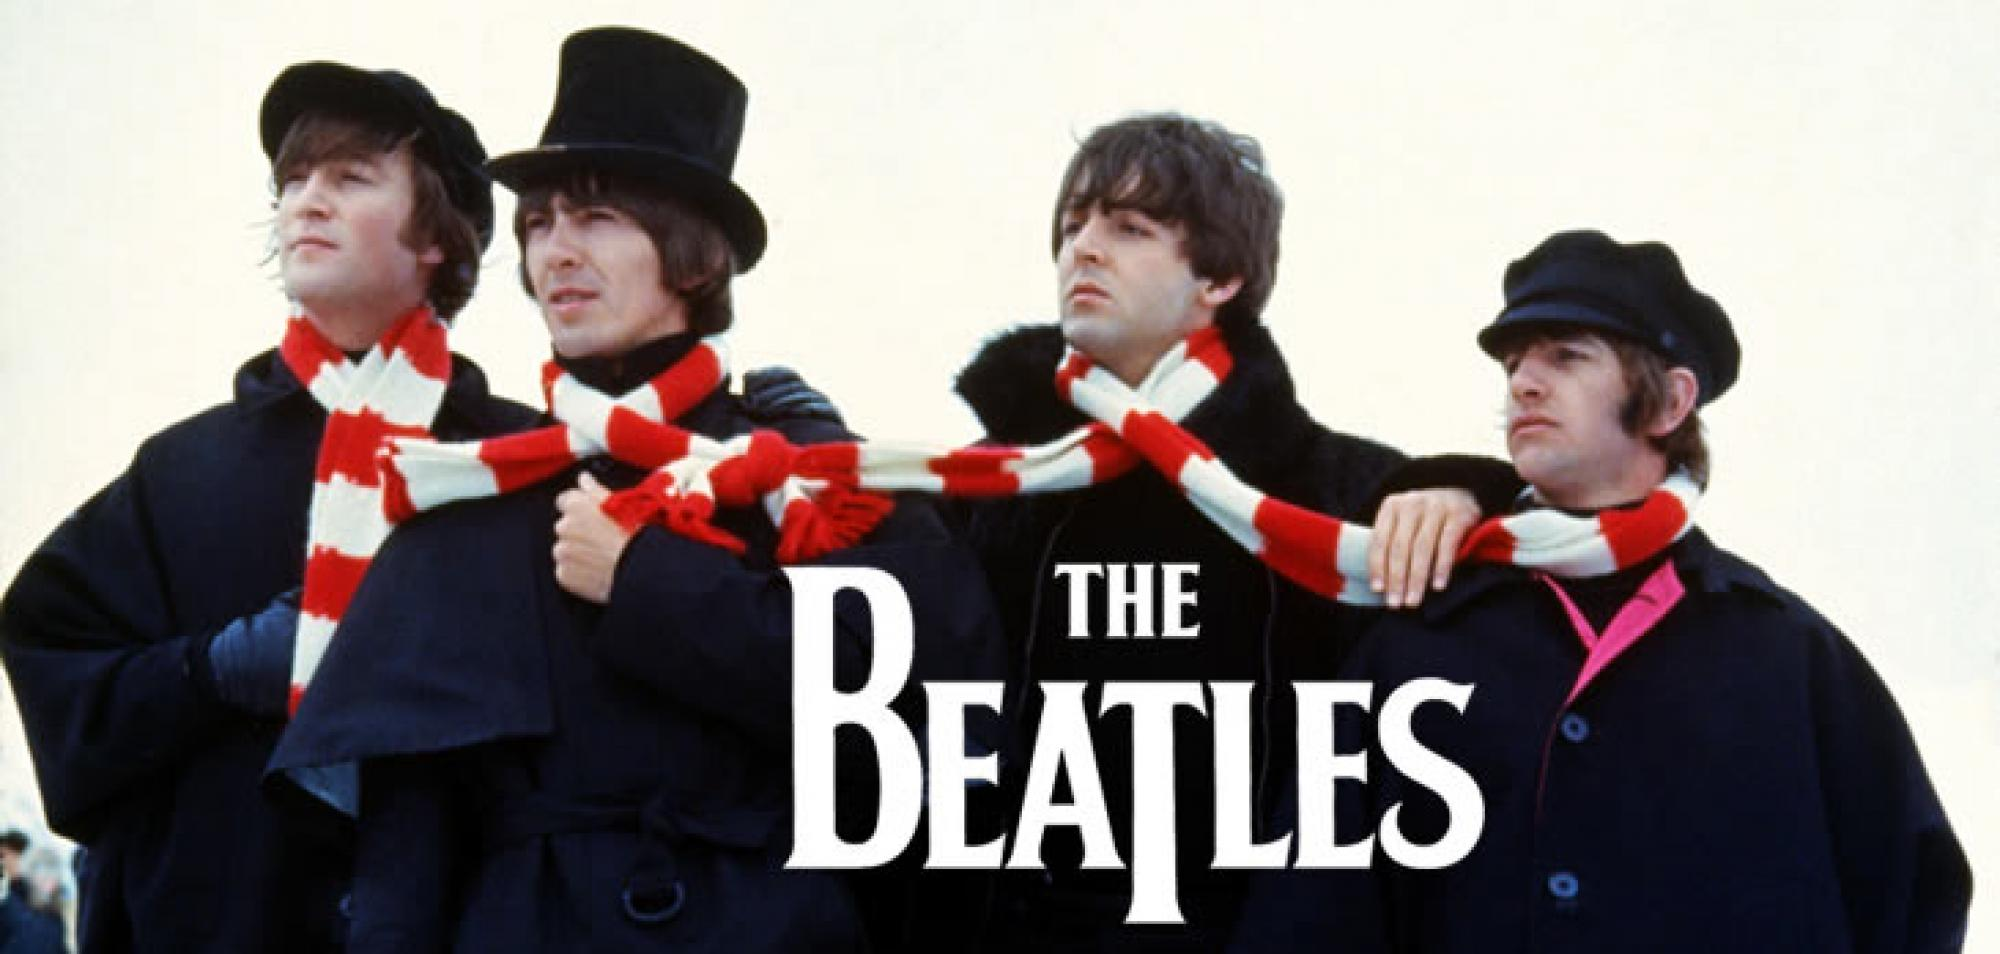 Film Screening in Cuba Pays Tribute to the Beatles